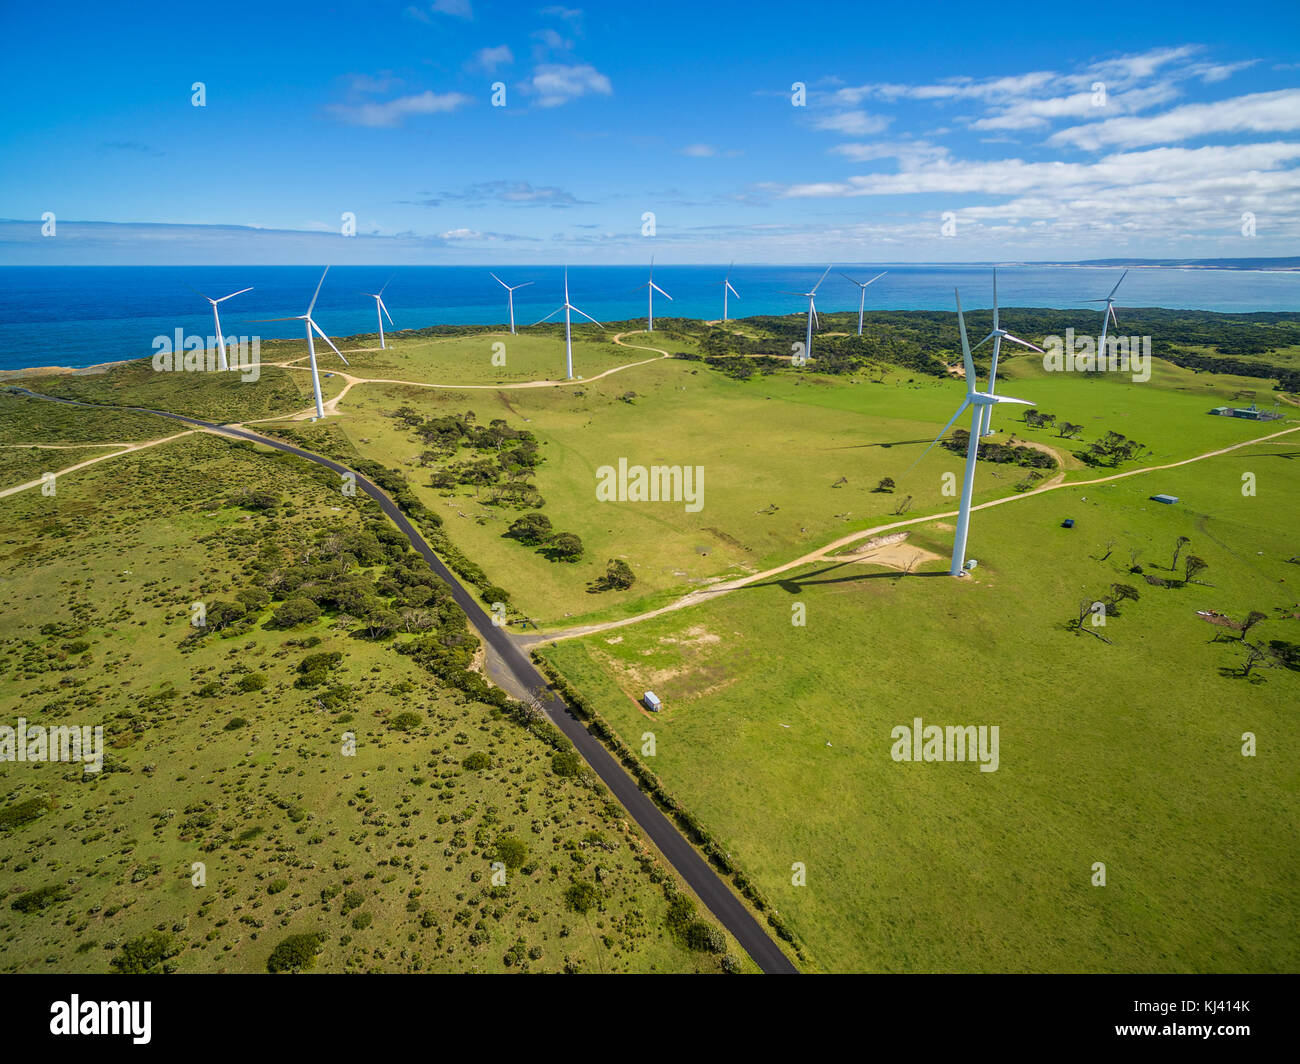 Aerial view of rural road and wind farm in Australia - Stock Image